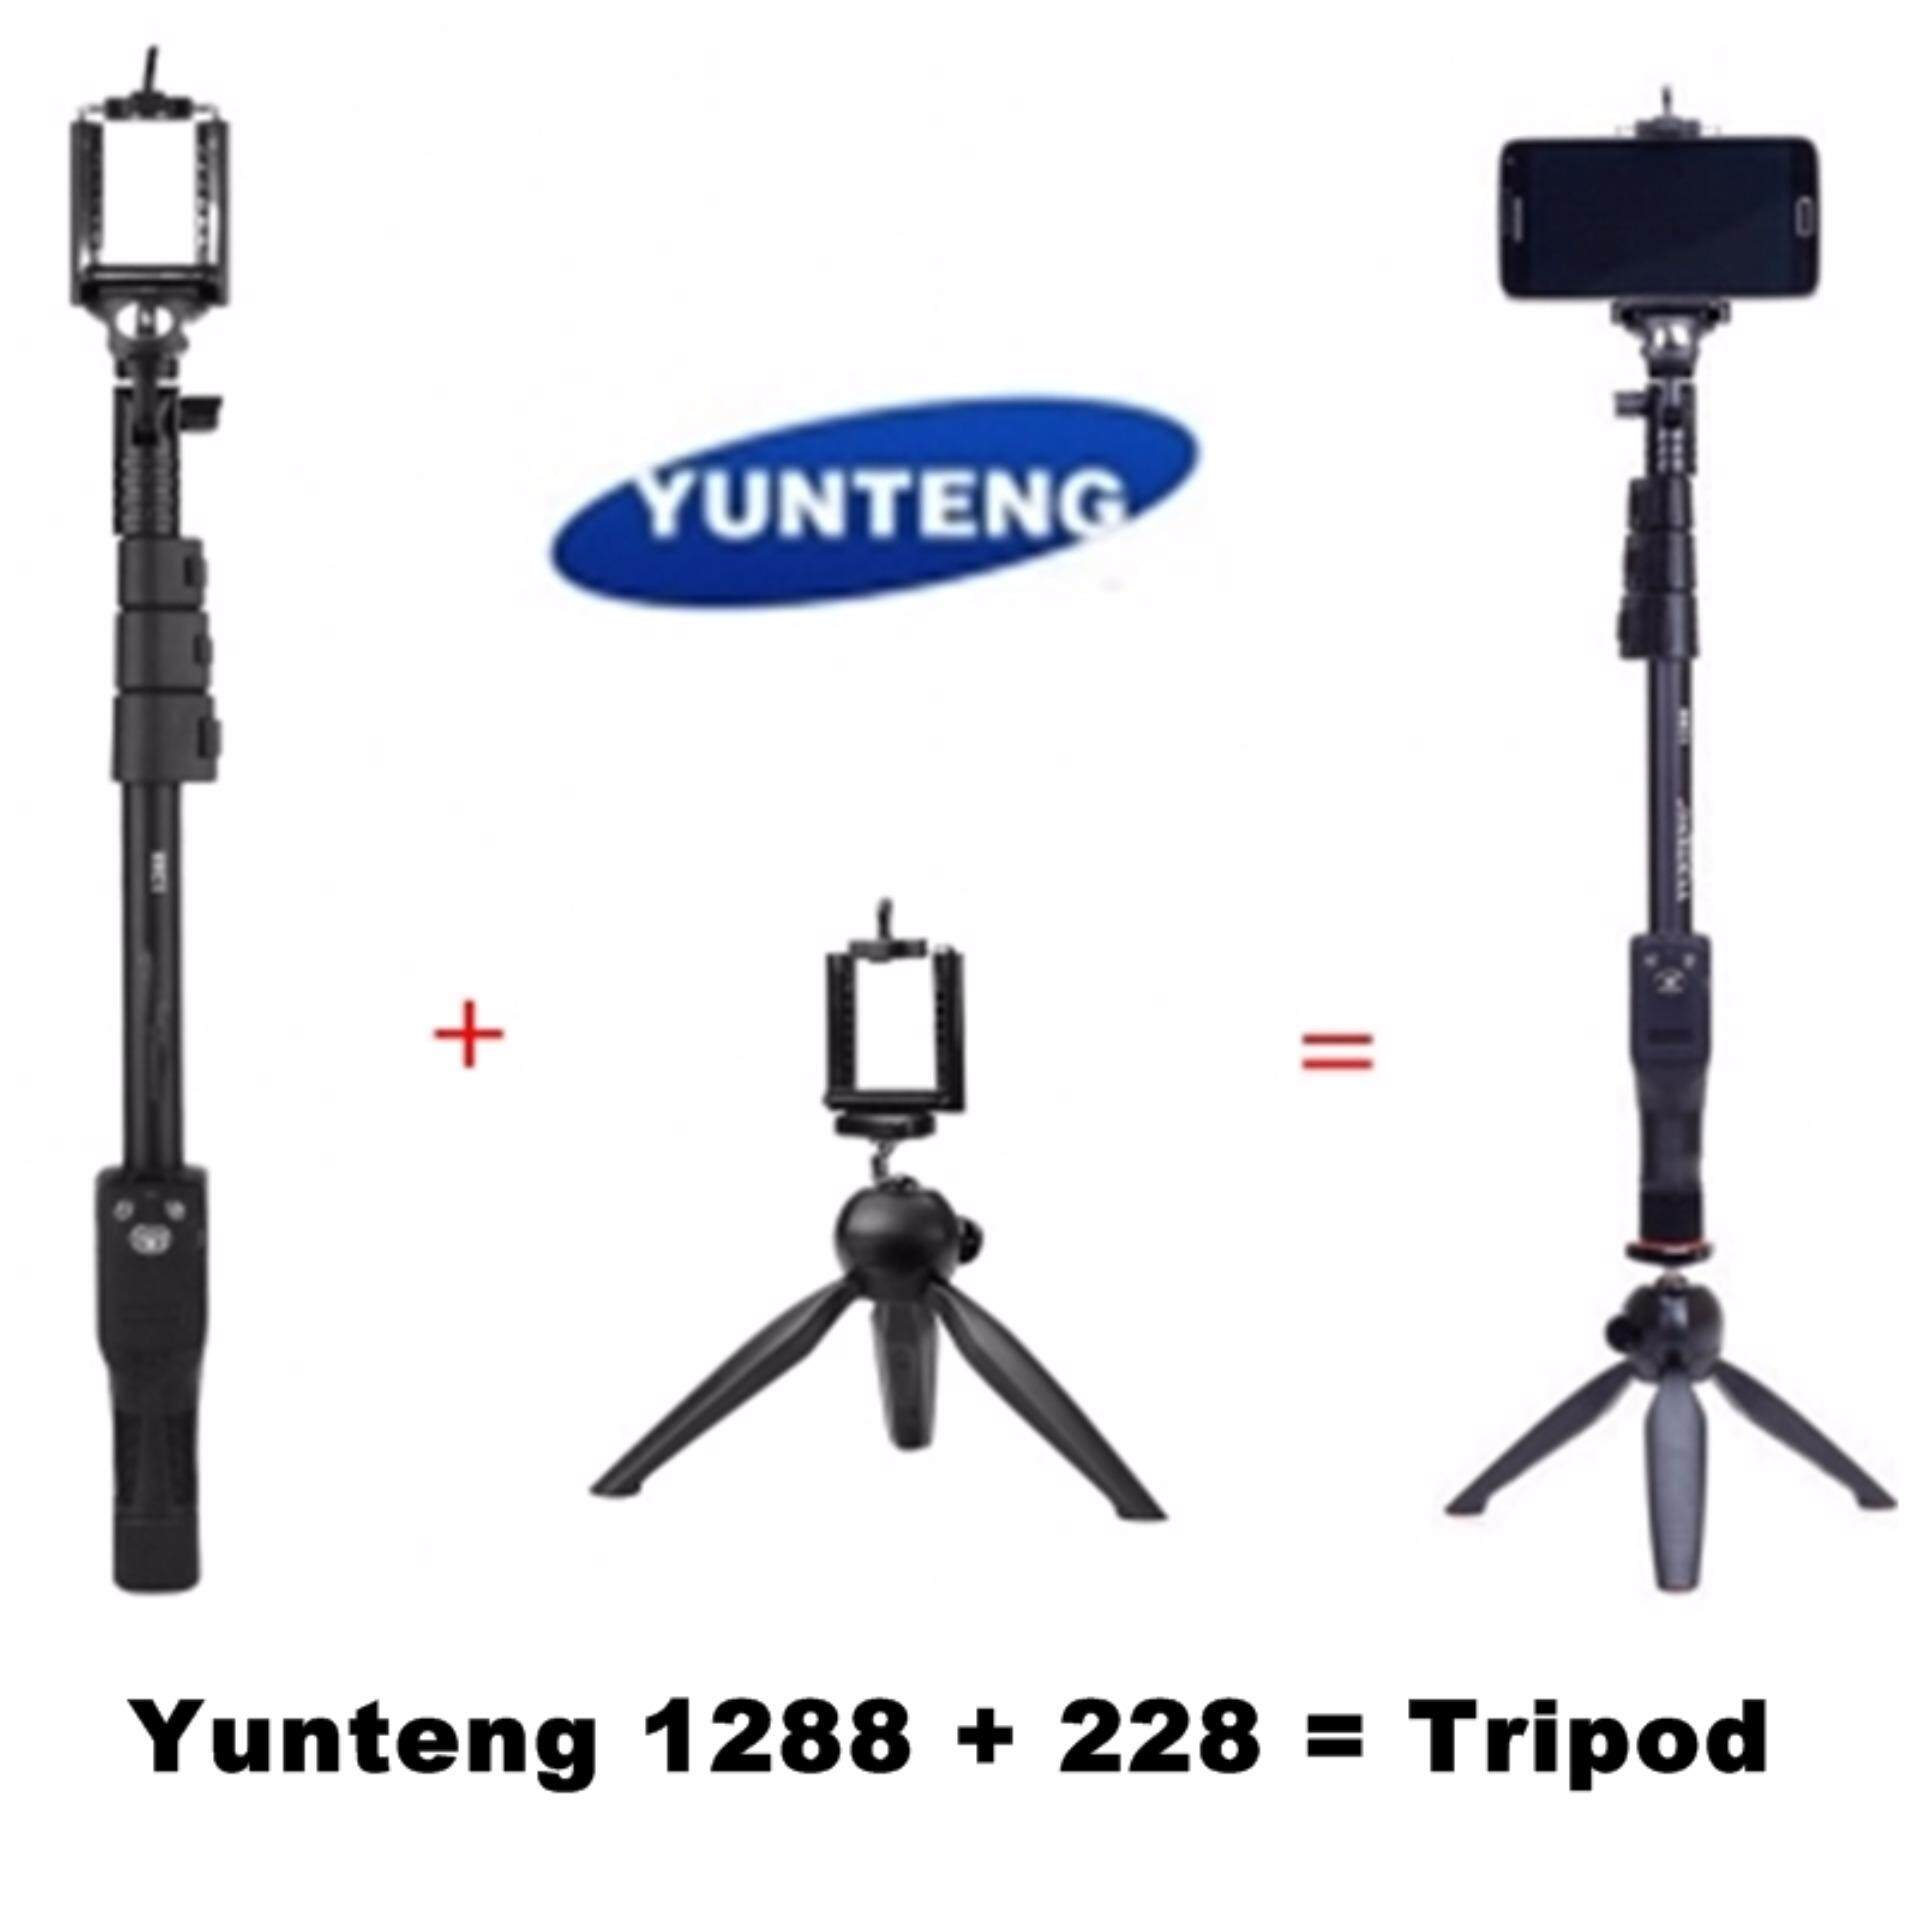 Yunteng Reviews Ratings And Best Price In Kl Selangor Malaysia Tripod Yt 880 1288 Extendable Selfie Stick Monopod With Bluetooth Remote Shooting 228 Mini For Iphone 5 6 6s Samsung Gopro Sony Cameras